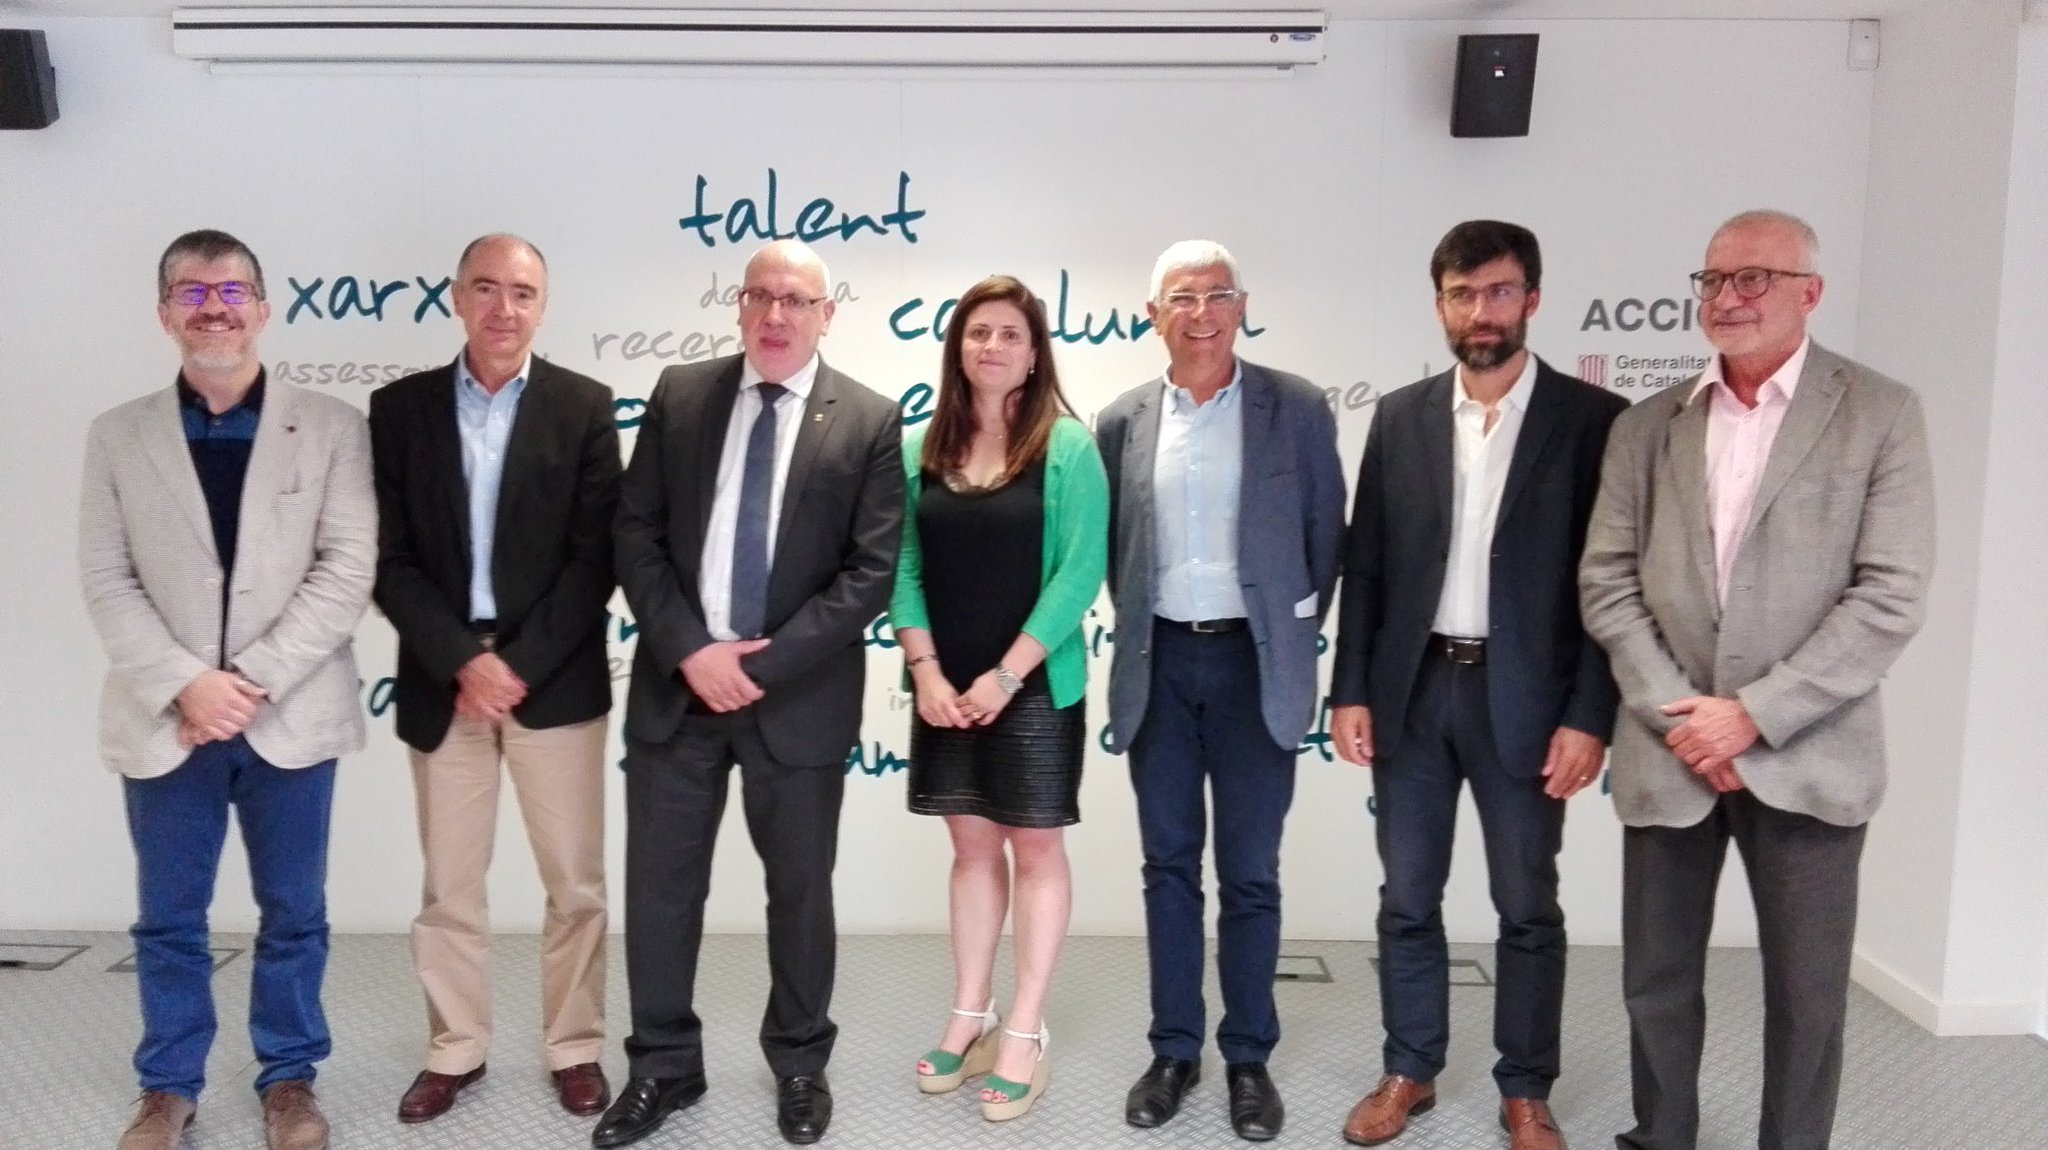 Catalonia's Minister for Business and Knowledge, Jordi Baiget, and the Director General of Industry, Núria Betriu, with the leaders of the 5 RIS3CAT communities. (Image: ACCIO)